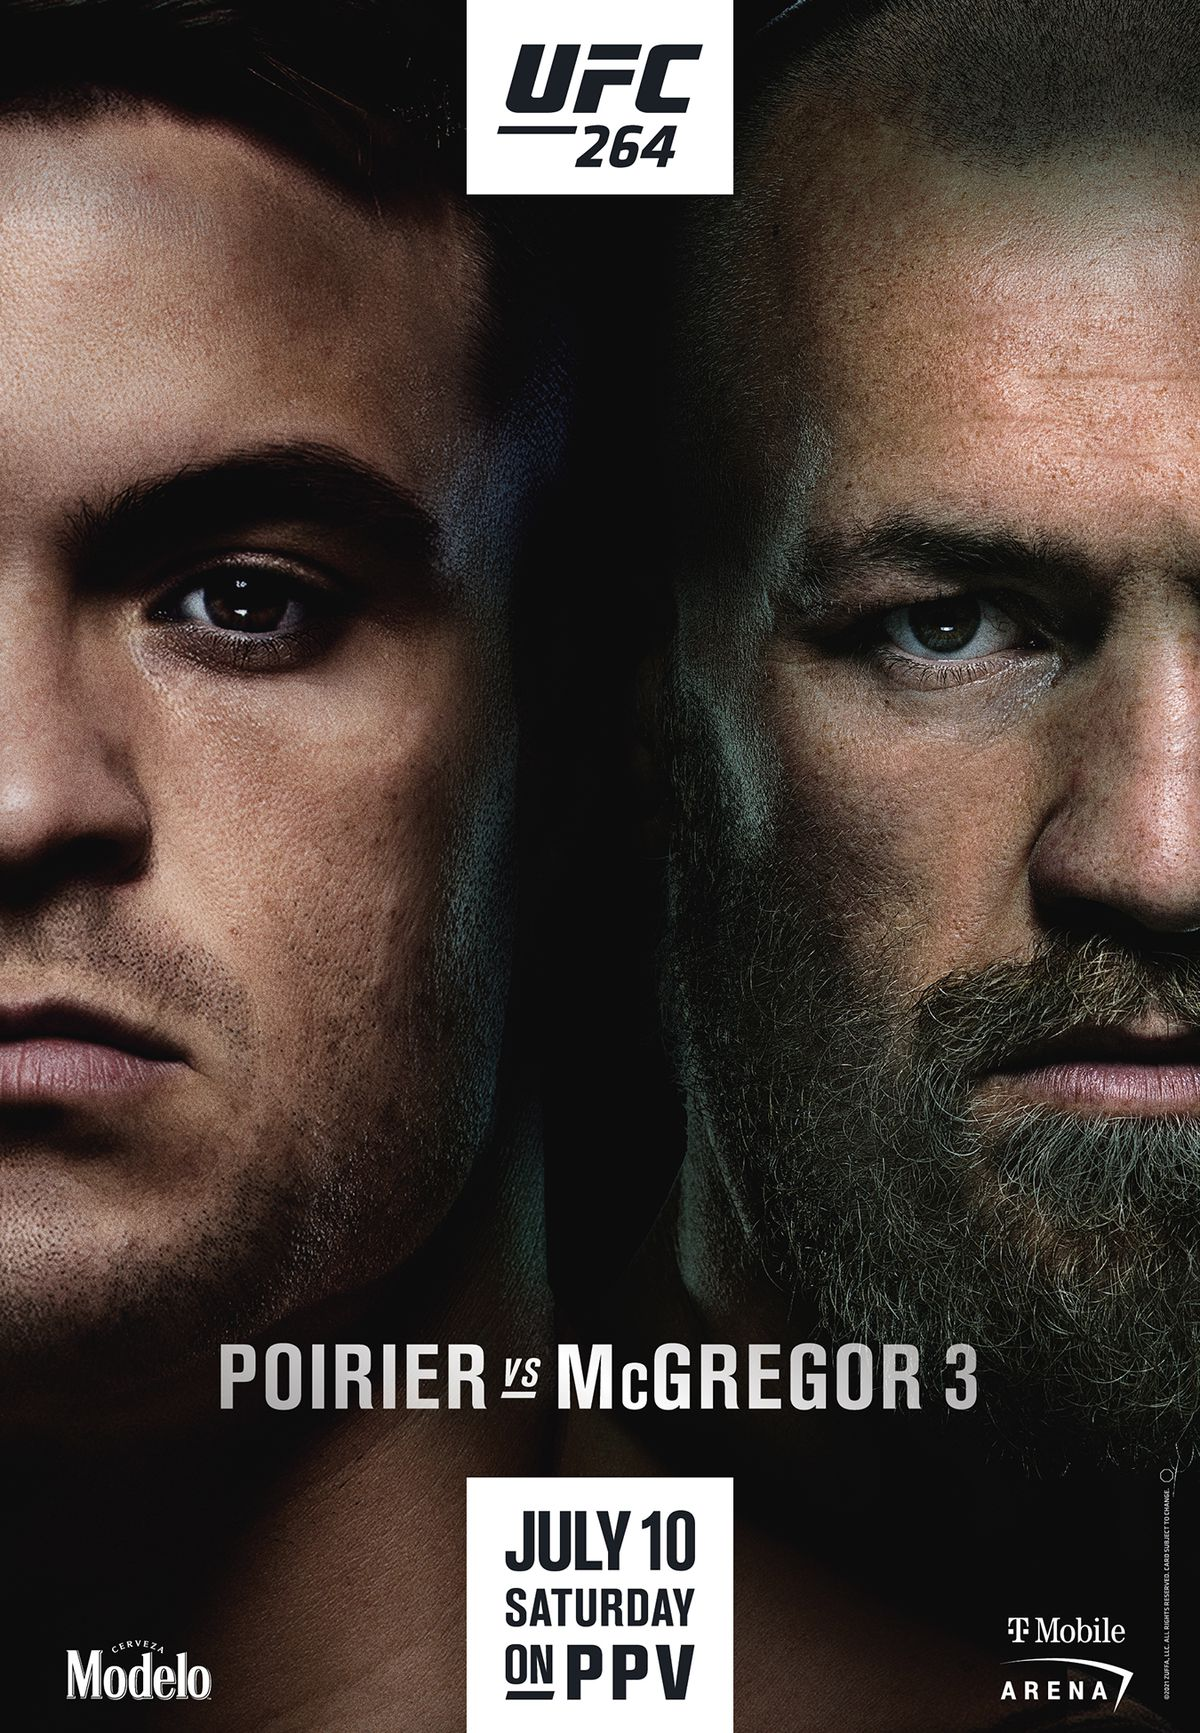 UFC 264 Fight Card Poster